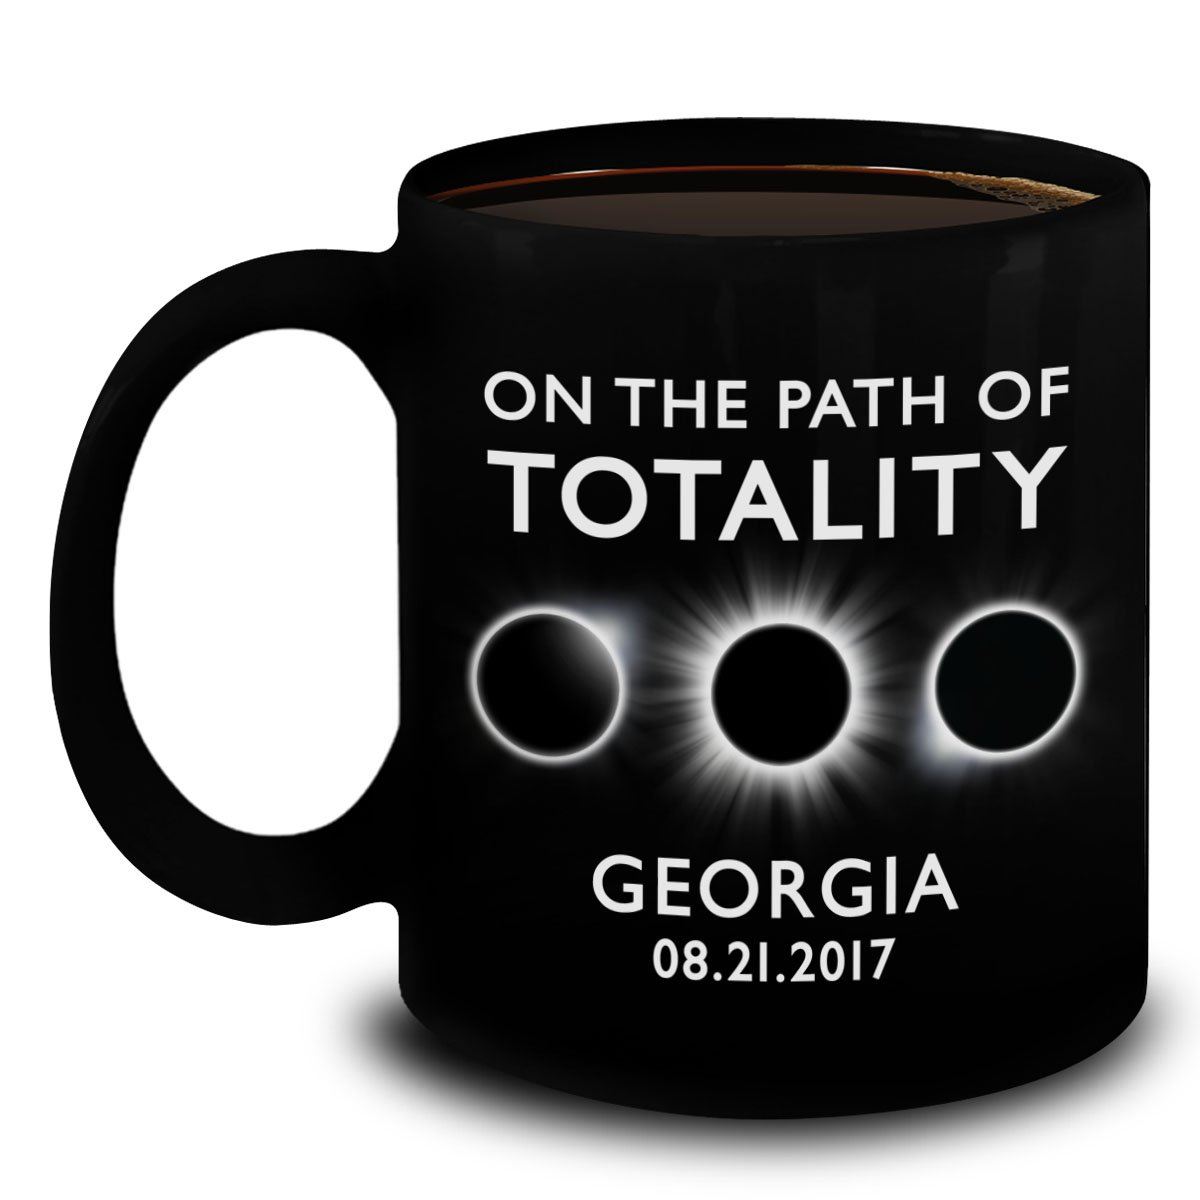 Total Solar Eclipse 2017 Gifts - On The Path Of Totality Georgia Coffee Mug - The Great American Solar Eclipse August 21 Black Ceramic Cup 11oz